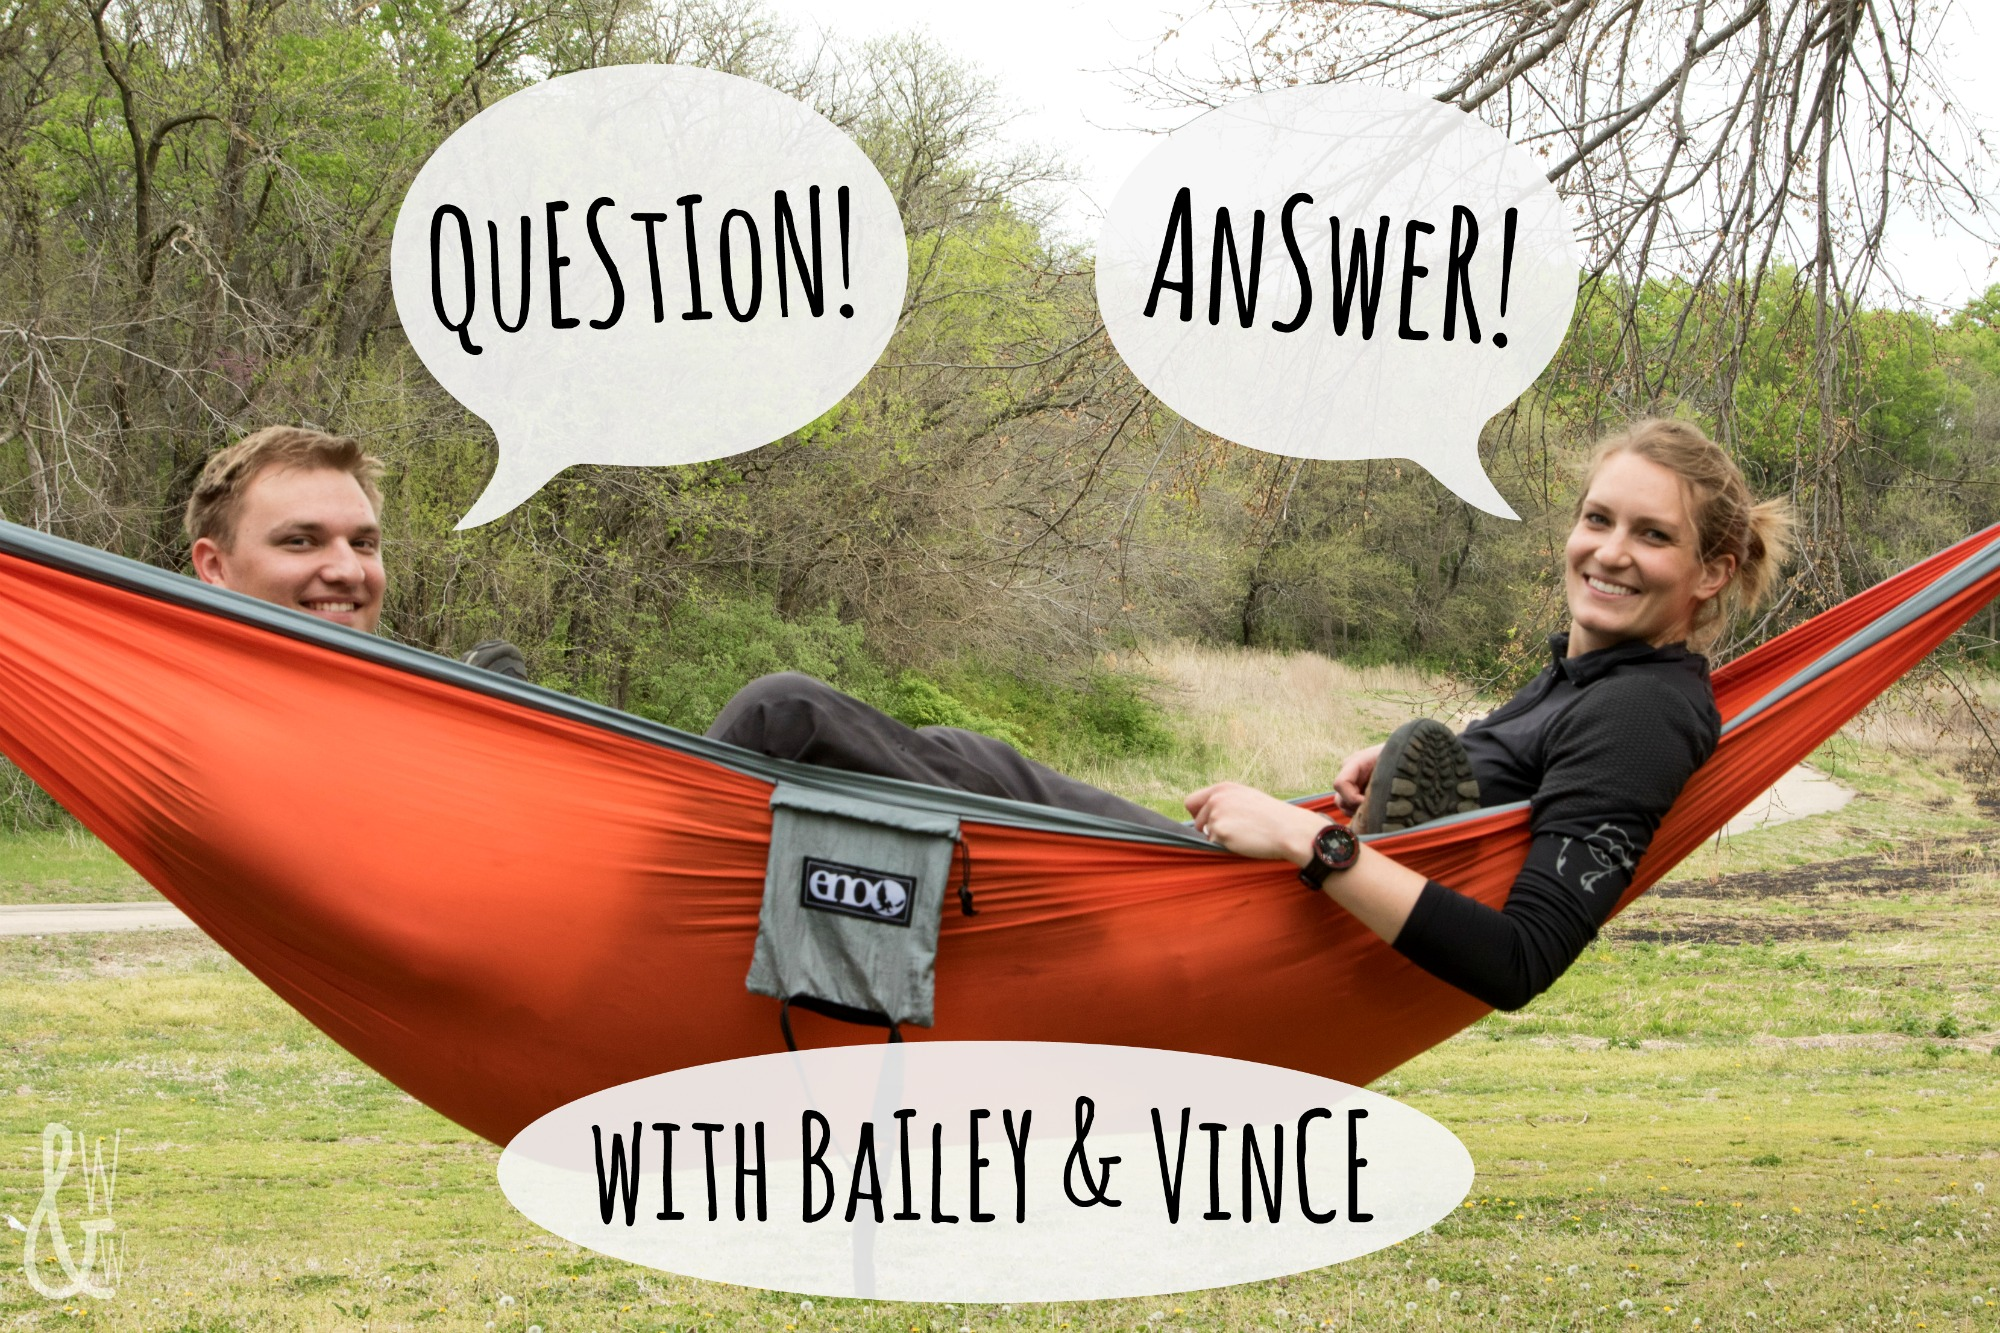 Another Q&A with Bailey & Vince!